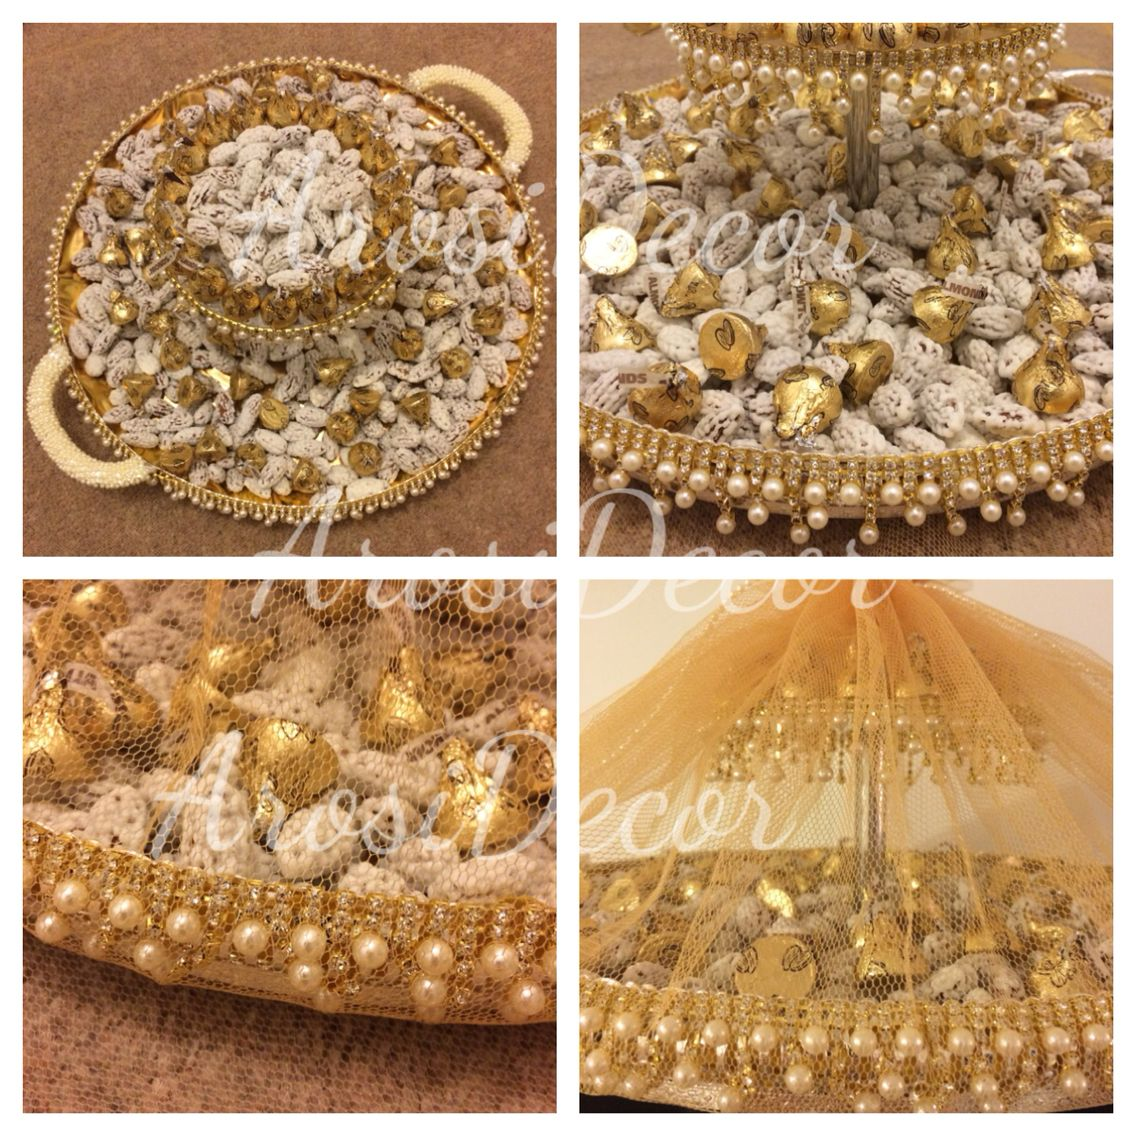 Indian Wedding Gifts Packing Ideas: Pin By Neeta Mehendale On Ideas